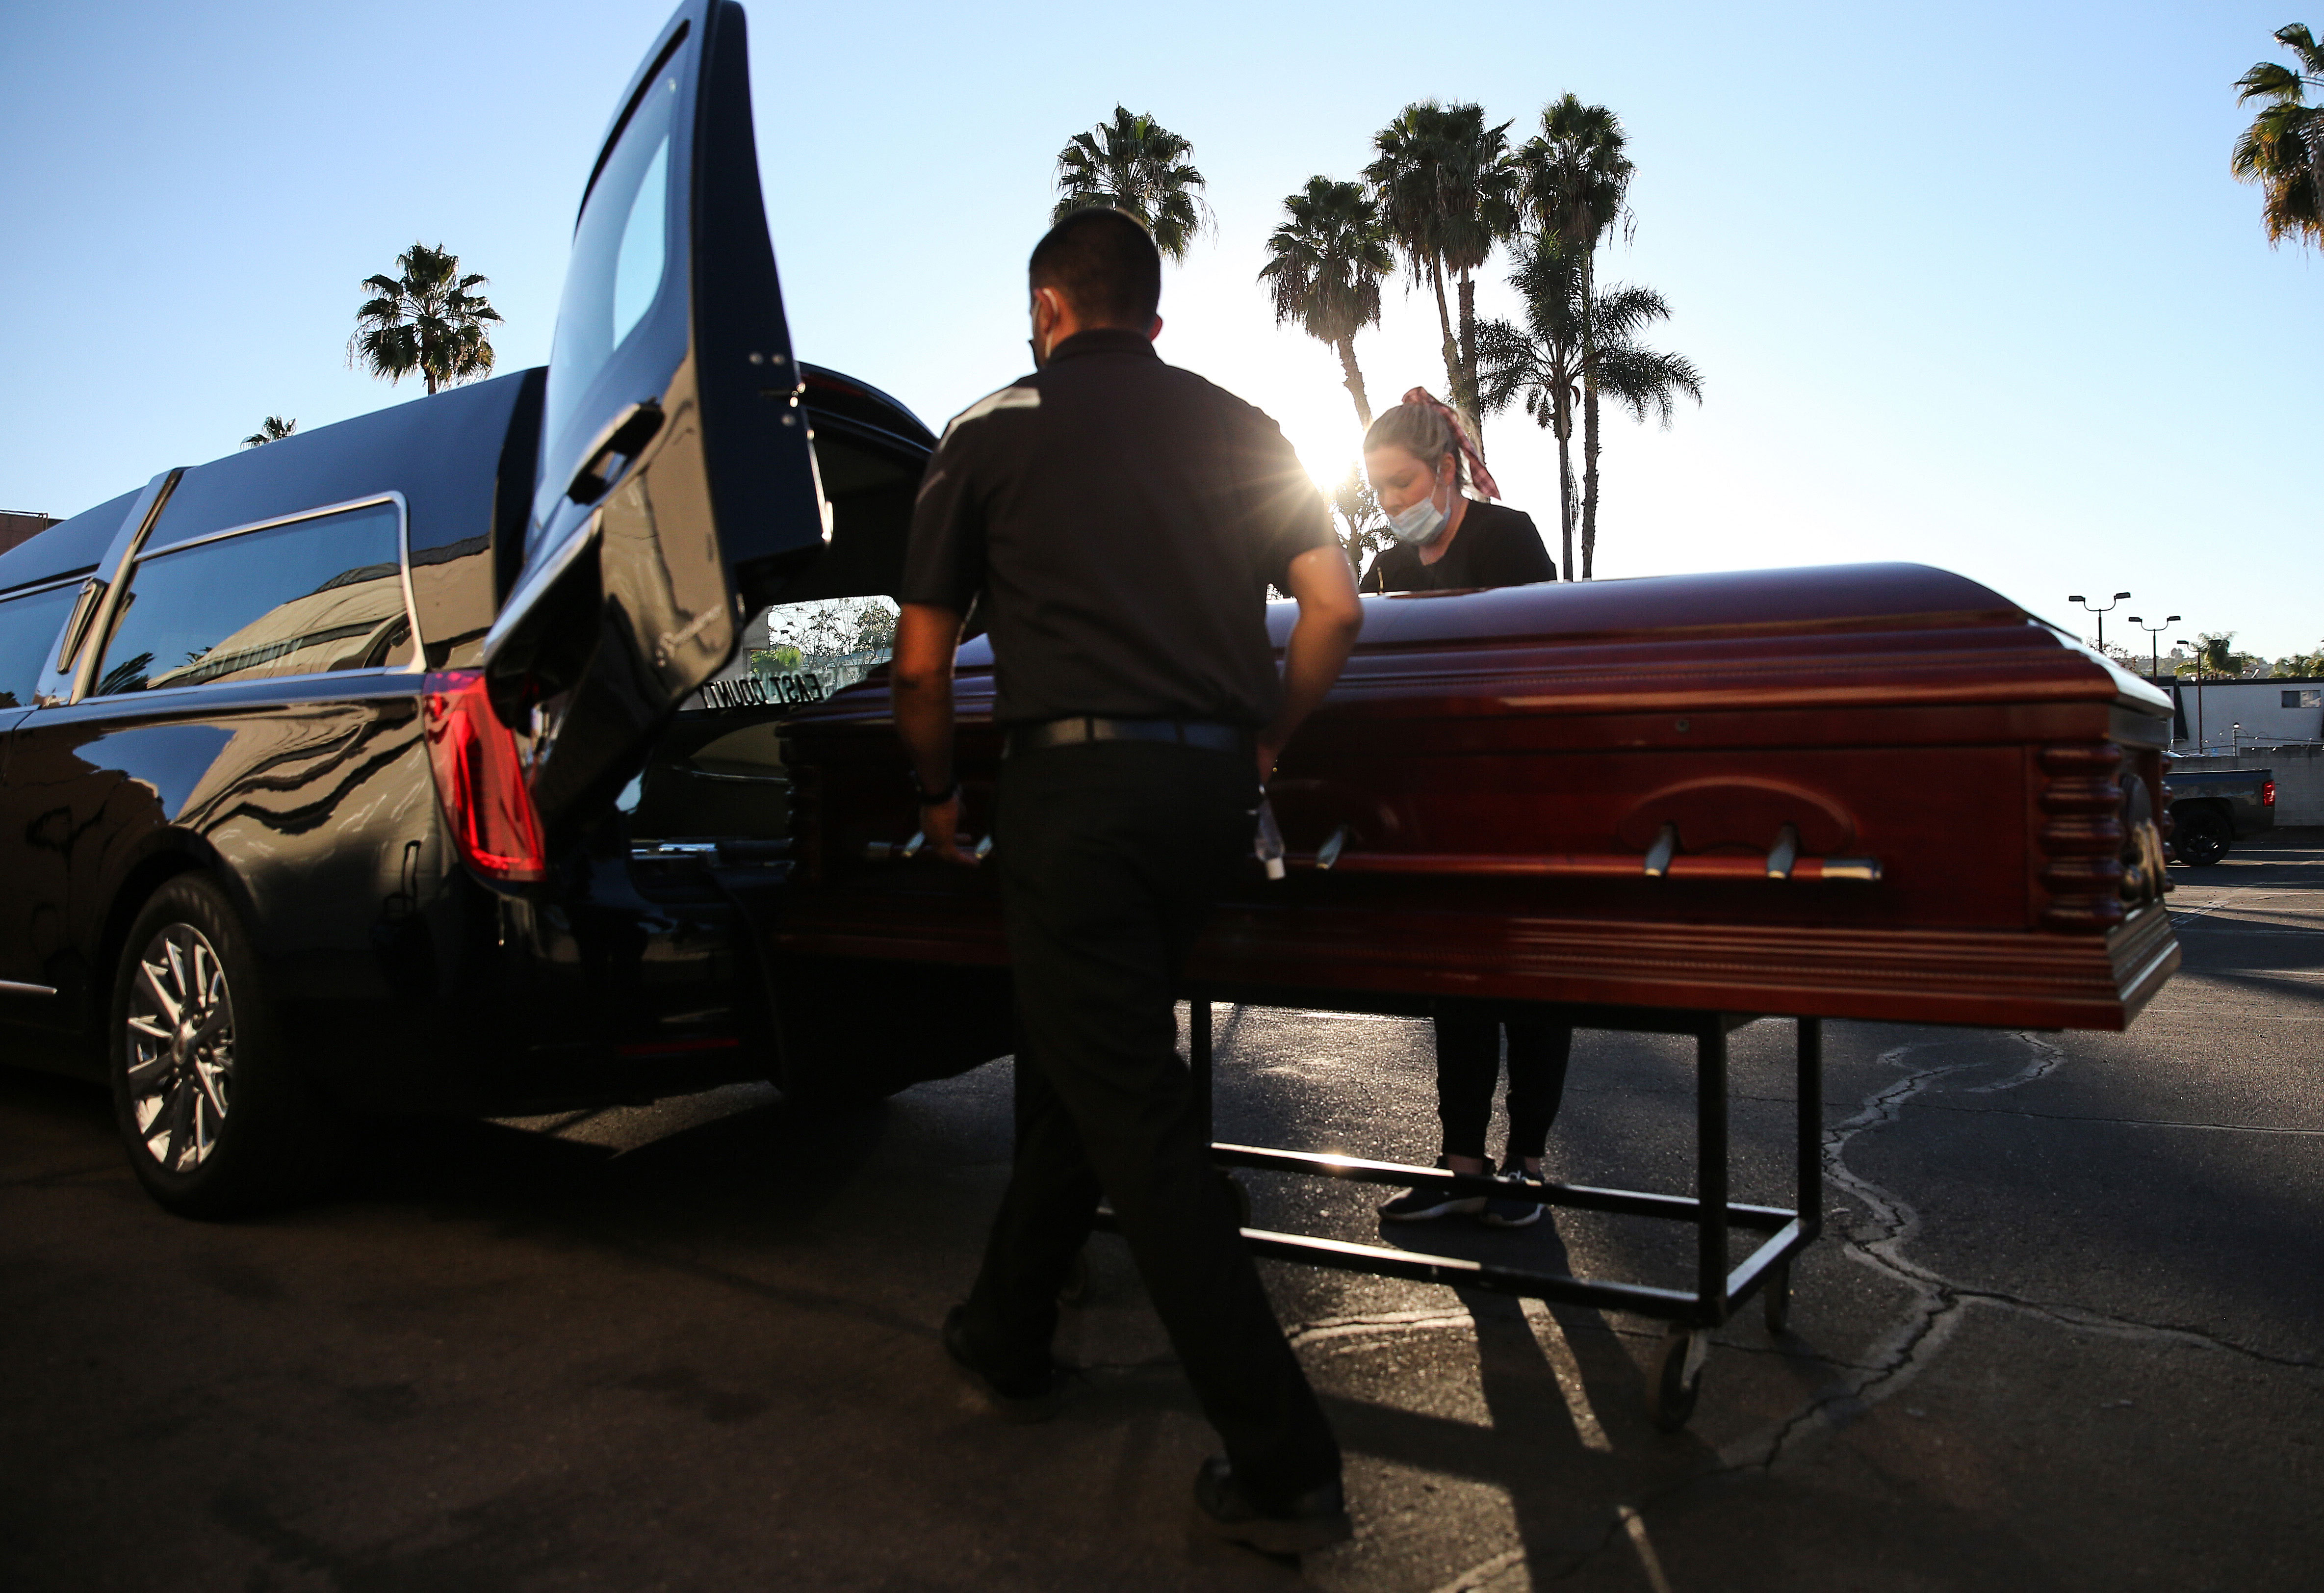 Embalmer and funeral director Kristy Oliver, right, and funeral attendant Sam Deras load into a hearse the casket of a person said to have died from Covid-19 at East County Mortuary in El Cajon, California, on January 15.